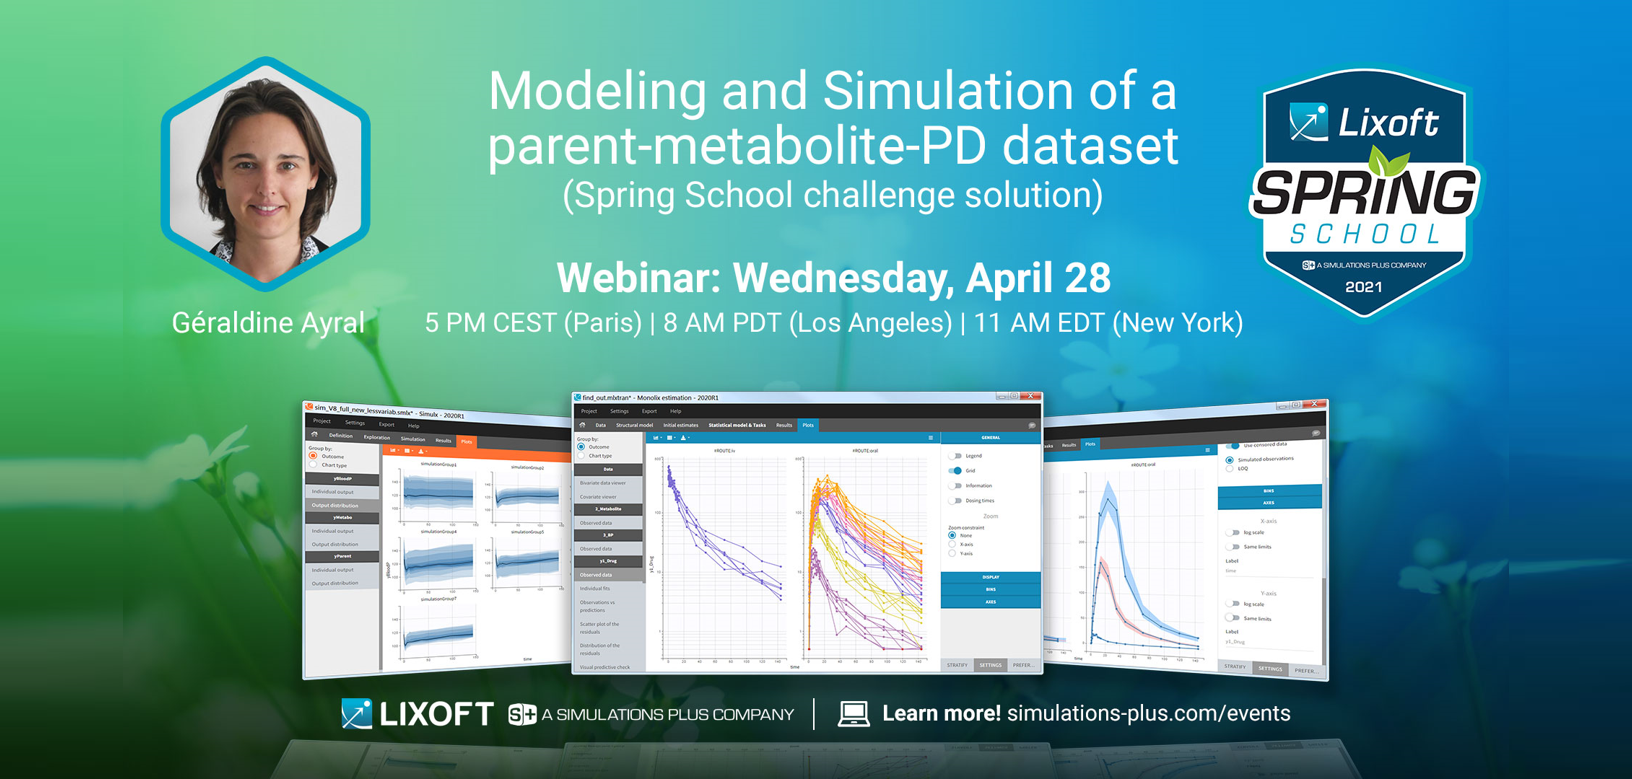 Modeling and Simulation of a parent/metabolite/PD dataset with Monolix and Simulx